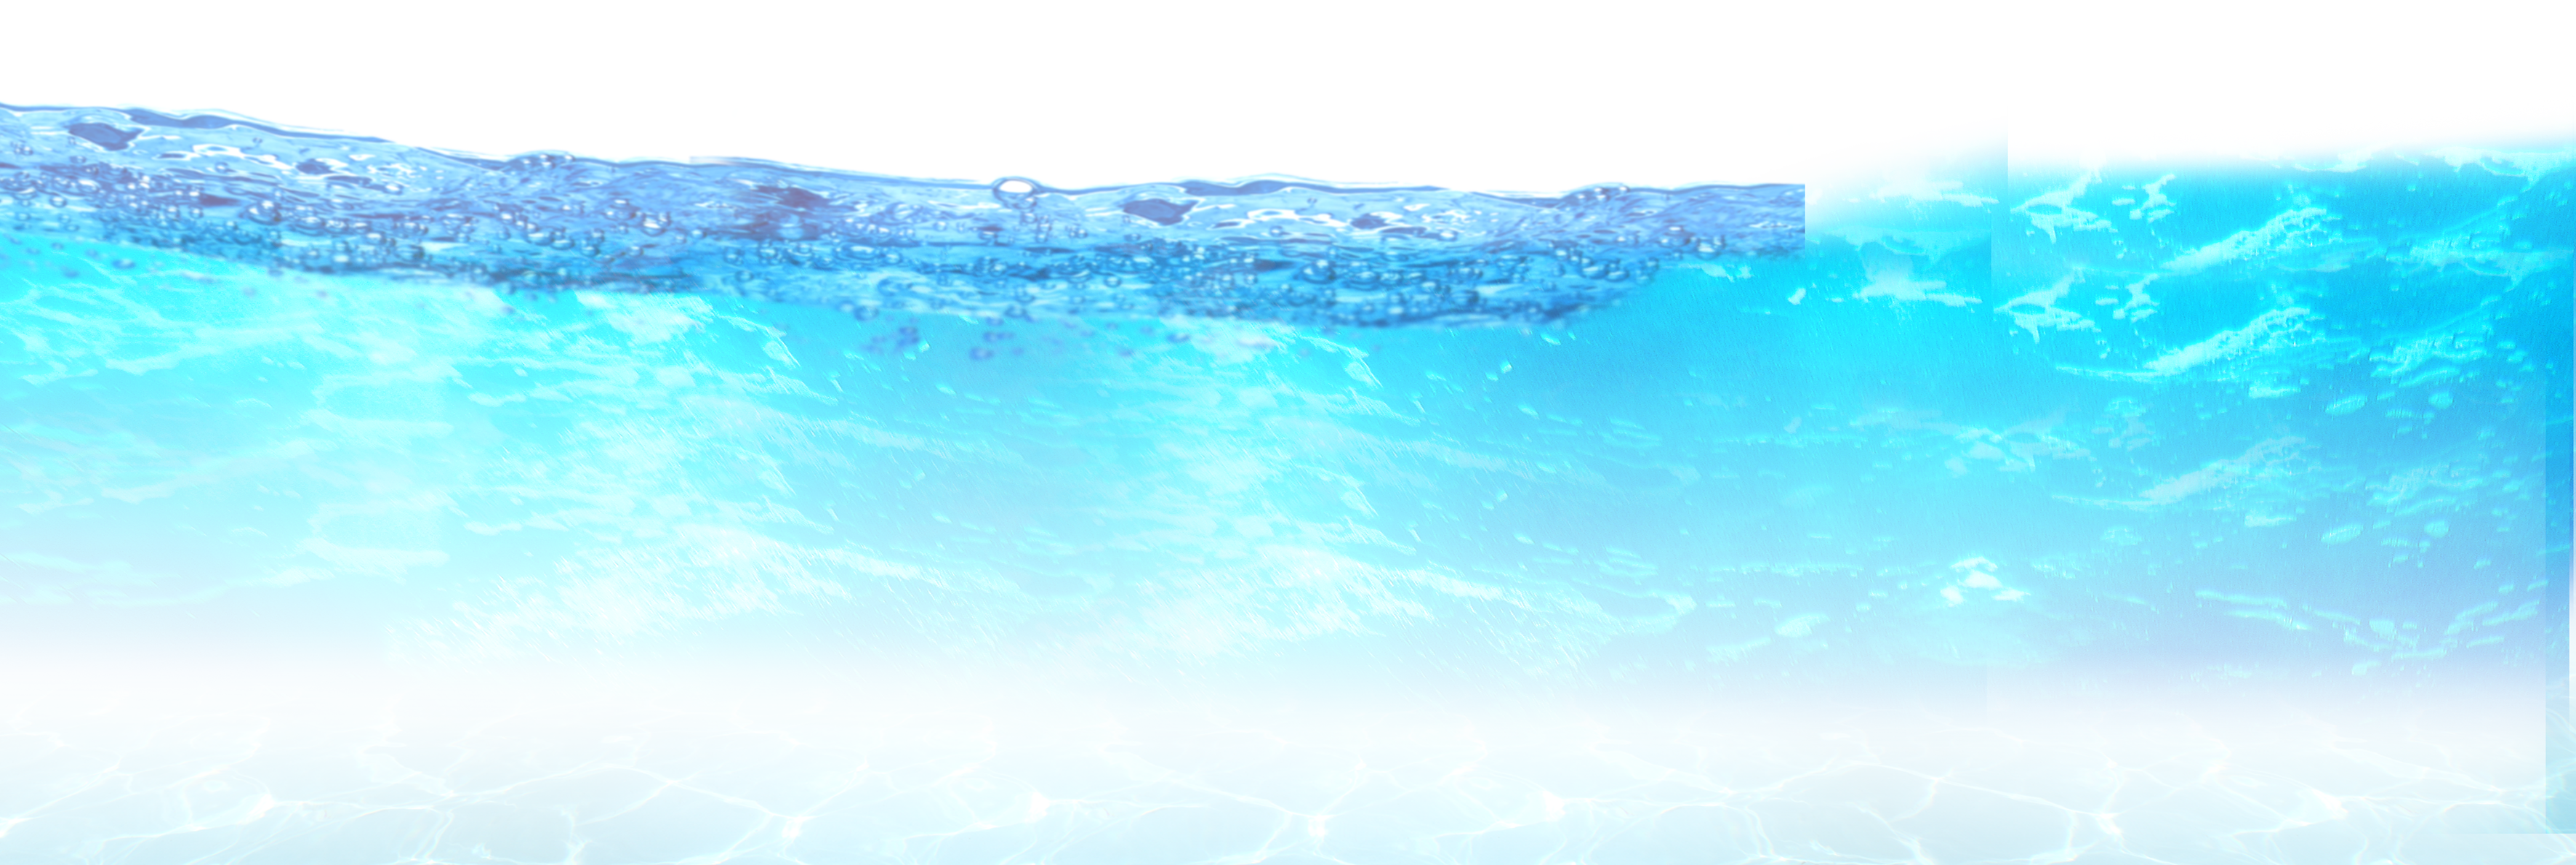 Water wave png. Resources sky blue turquoise